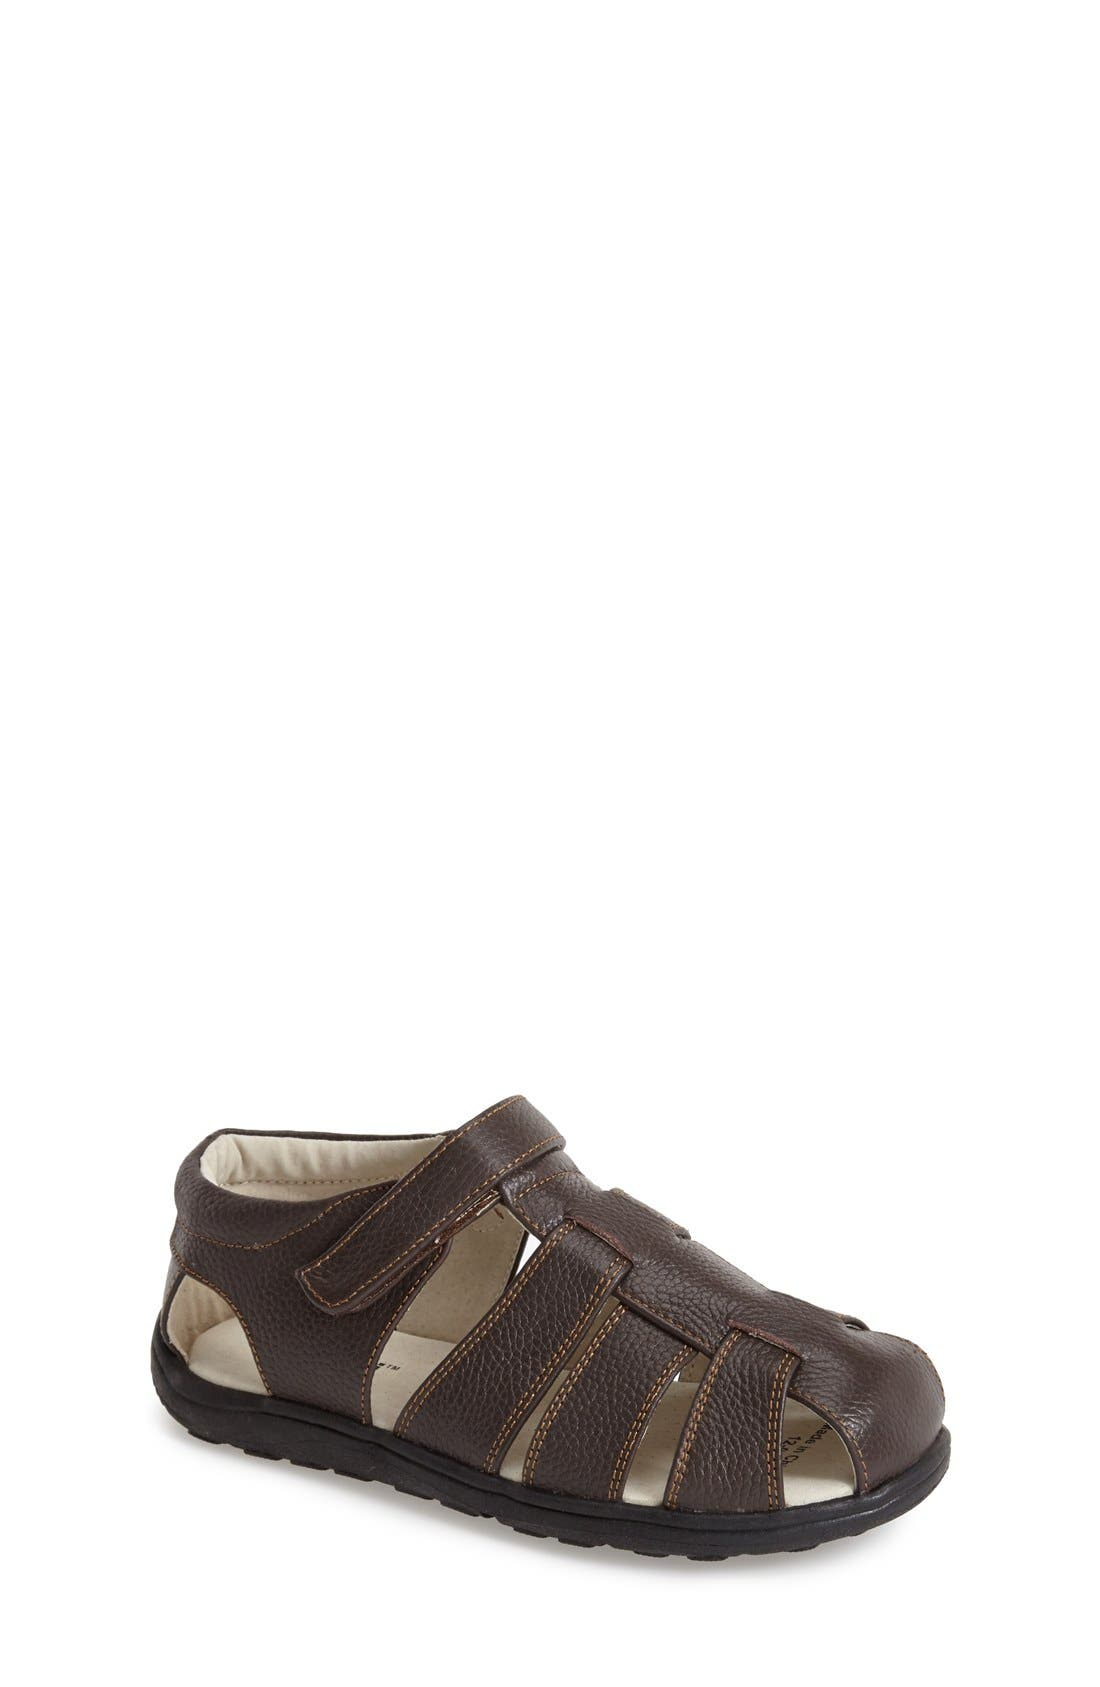 See Kai Run 'Dillon II' Leather Fisherman Sandal (Toddler & Little Kid)